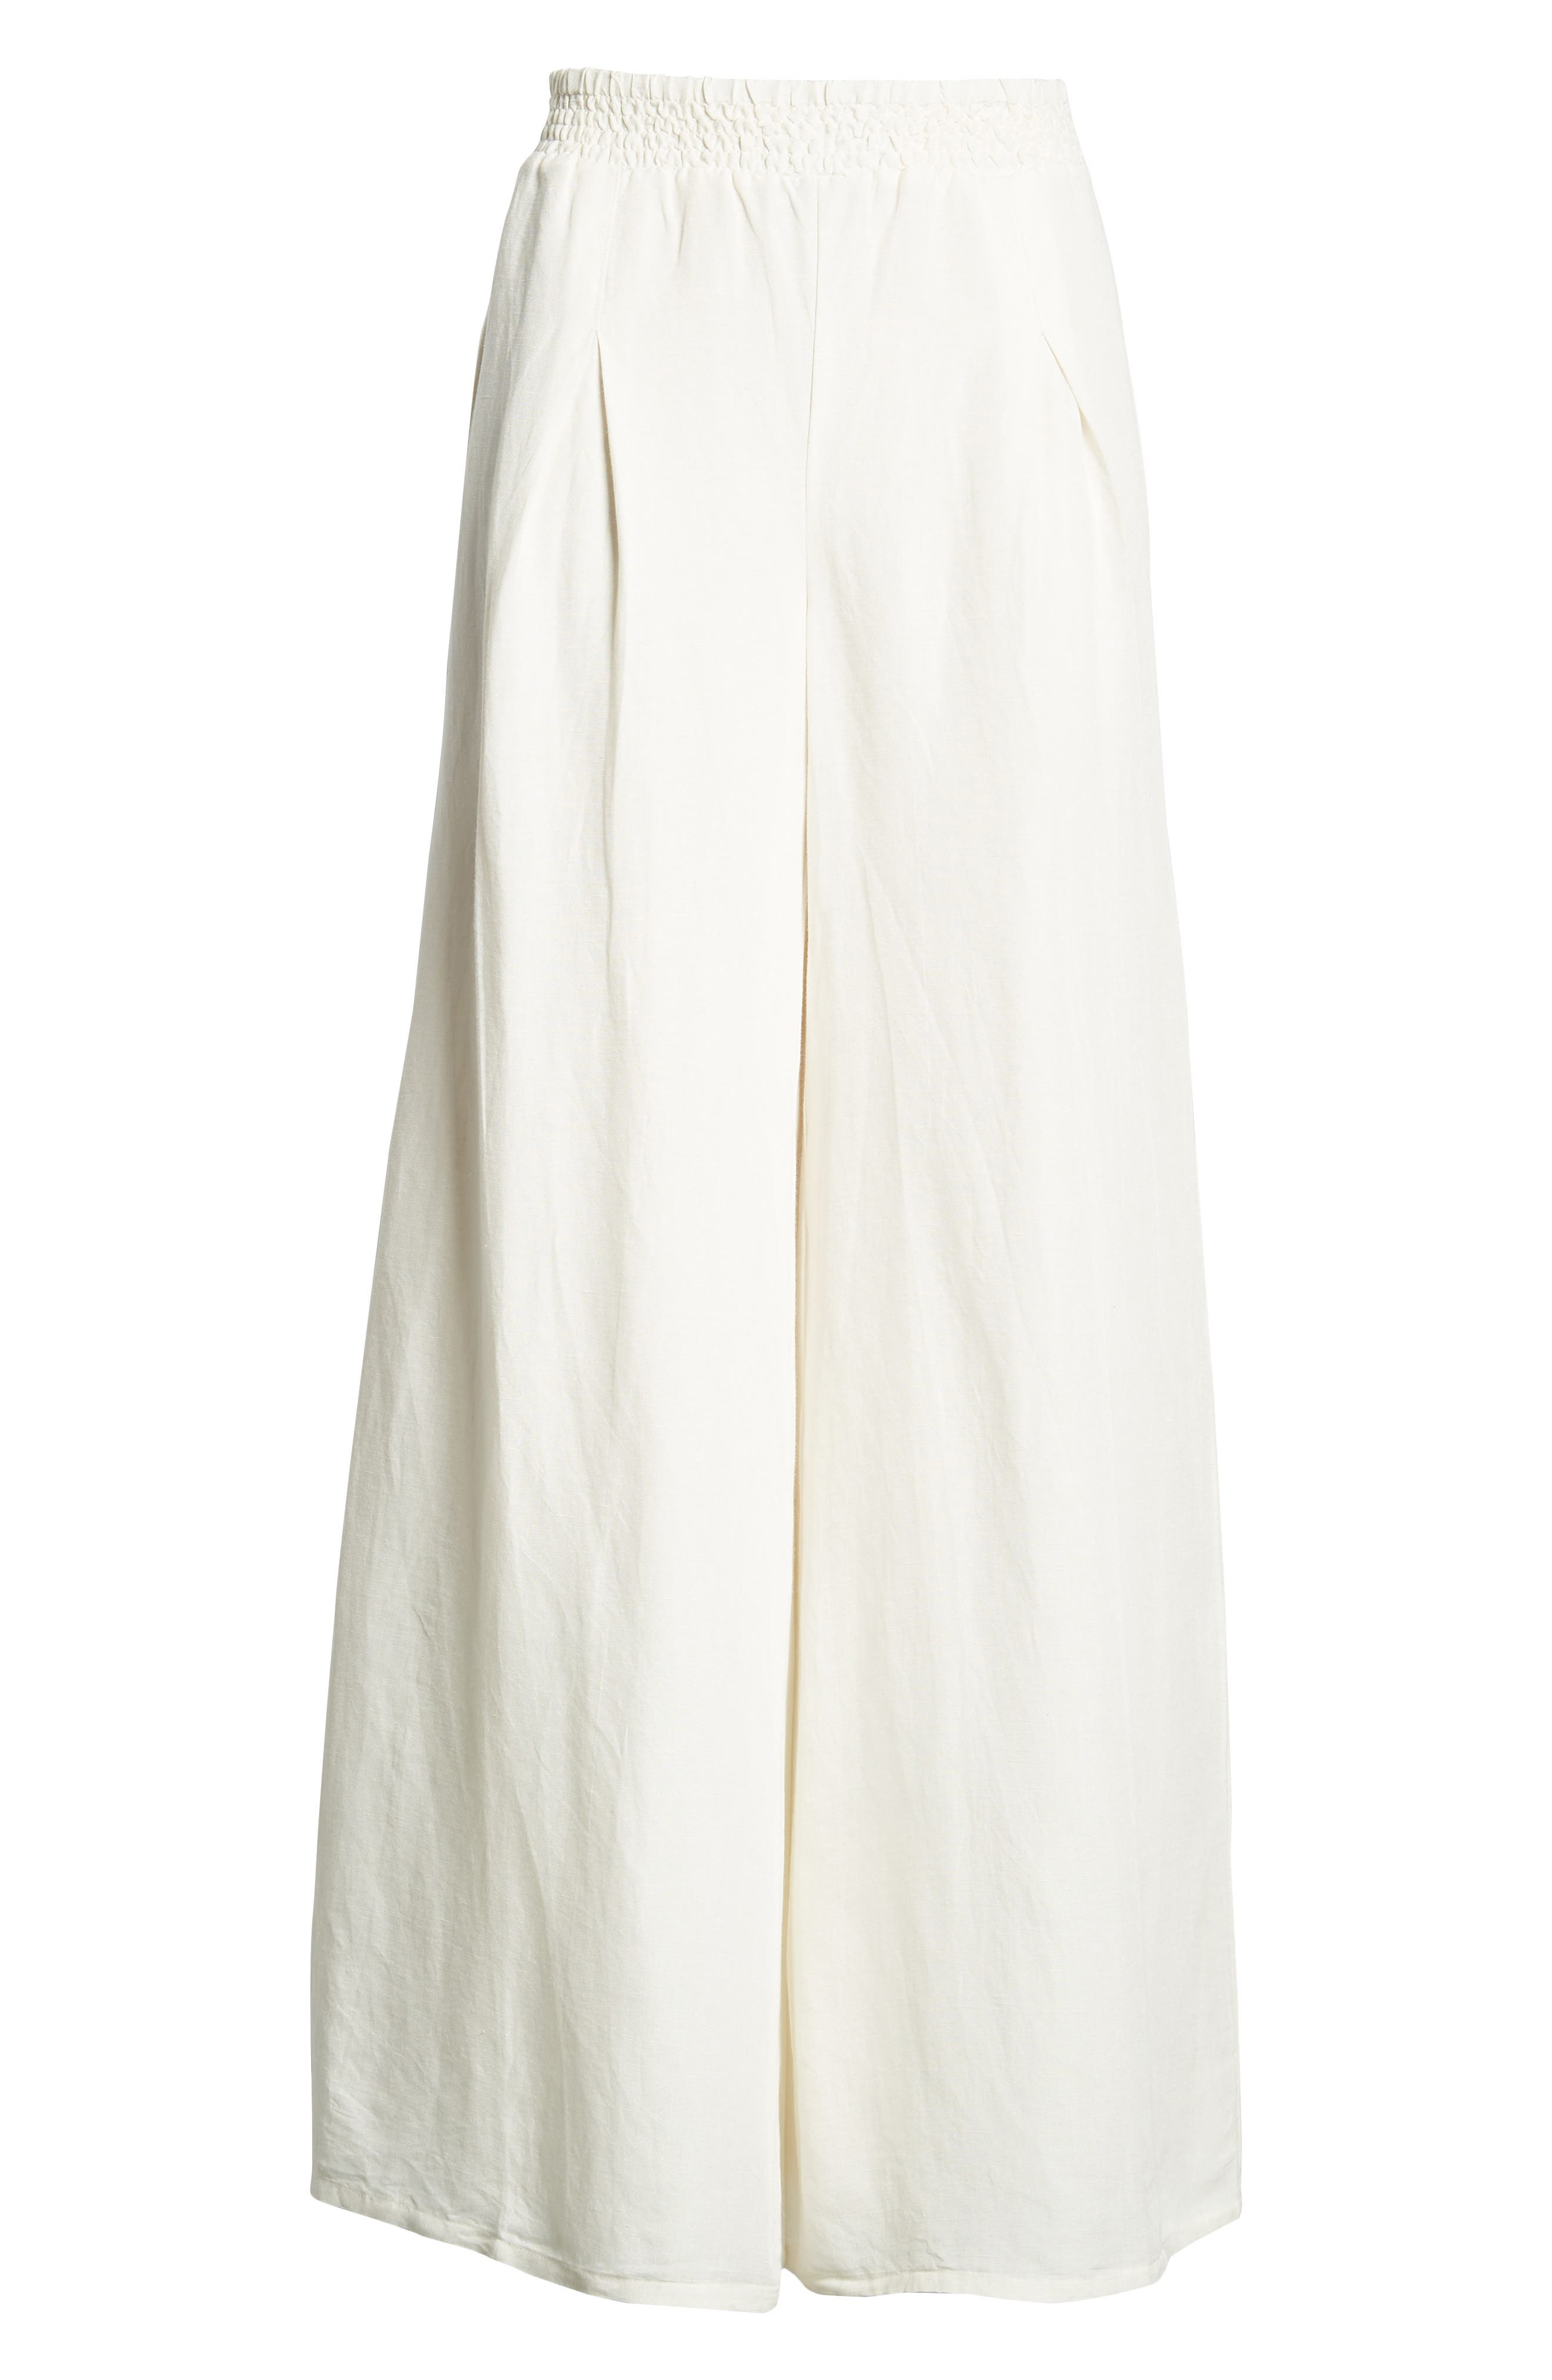 High Roads Smocked Wide Leg Pants,                             Alternate thumbnail 7, color,                             Cool Whip